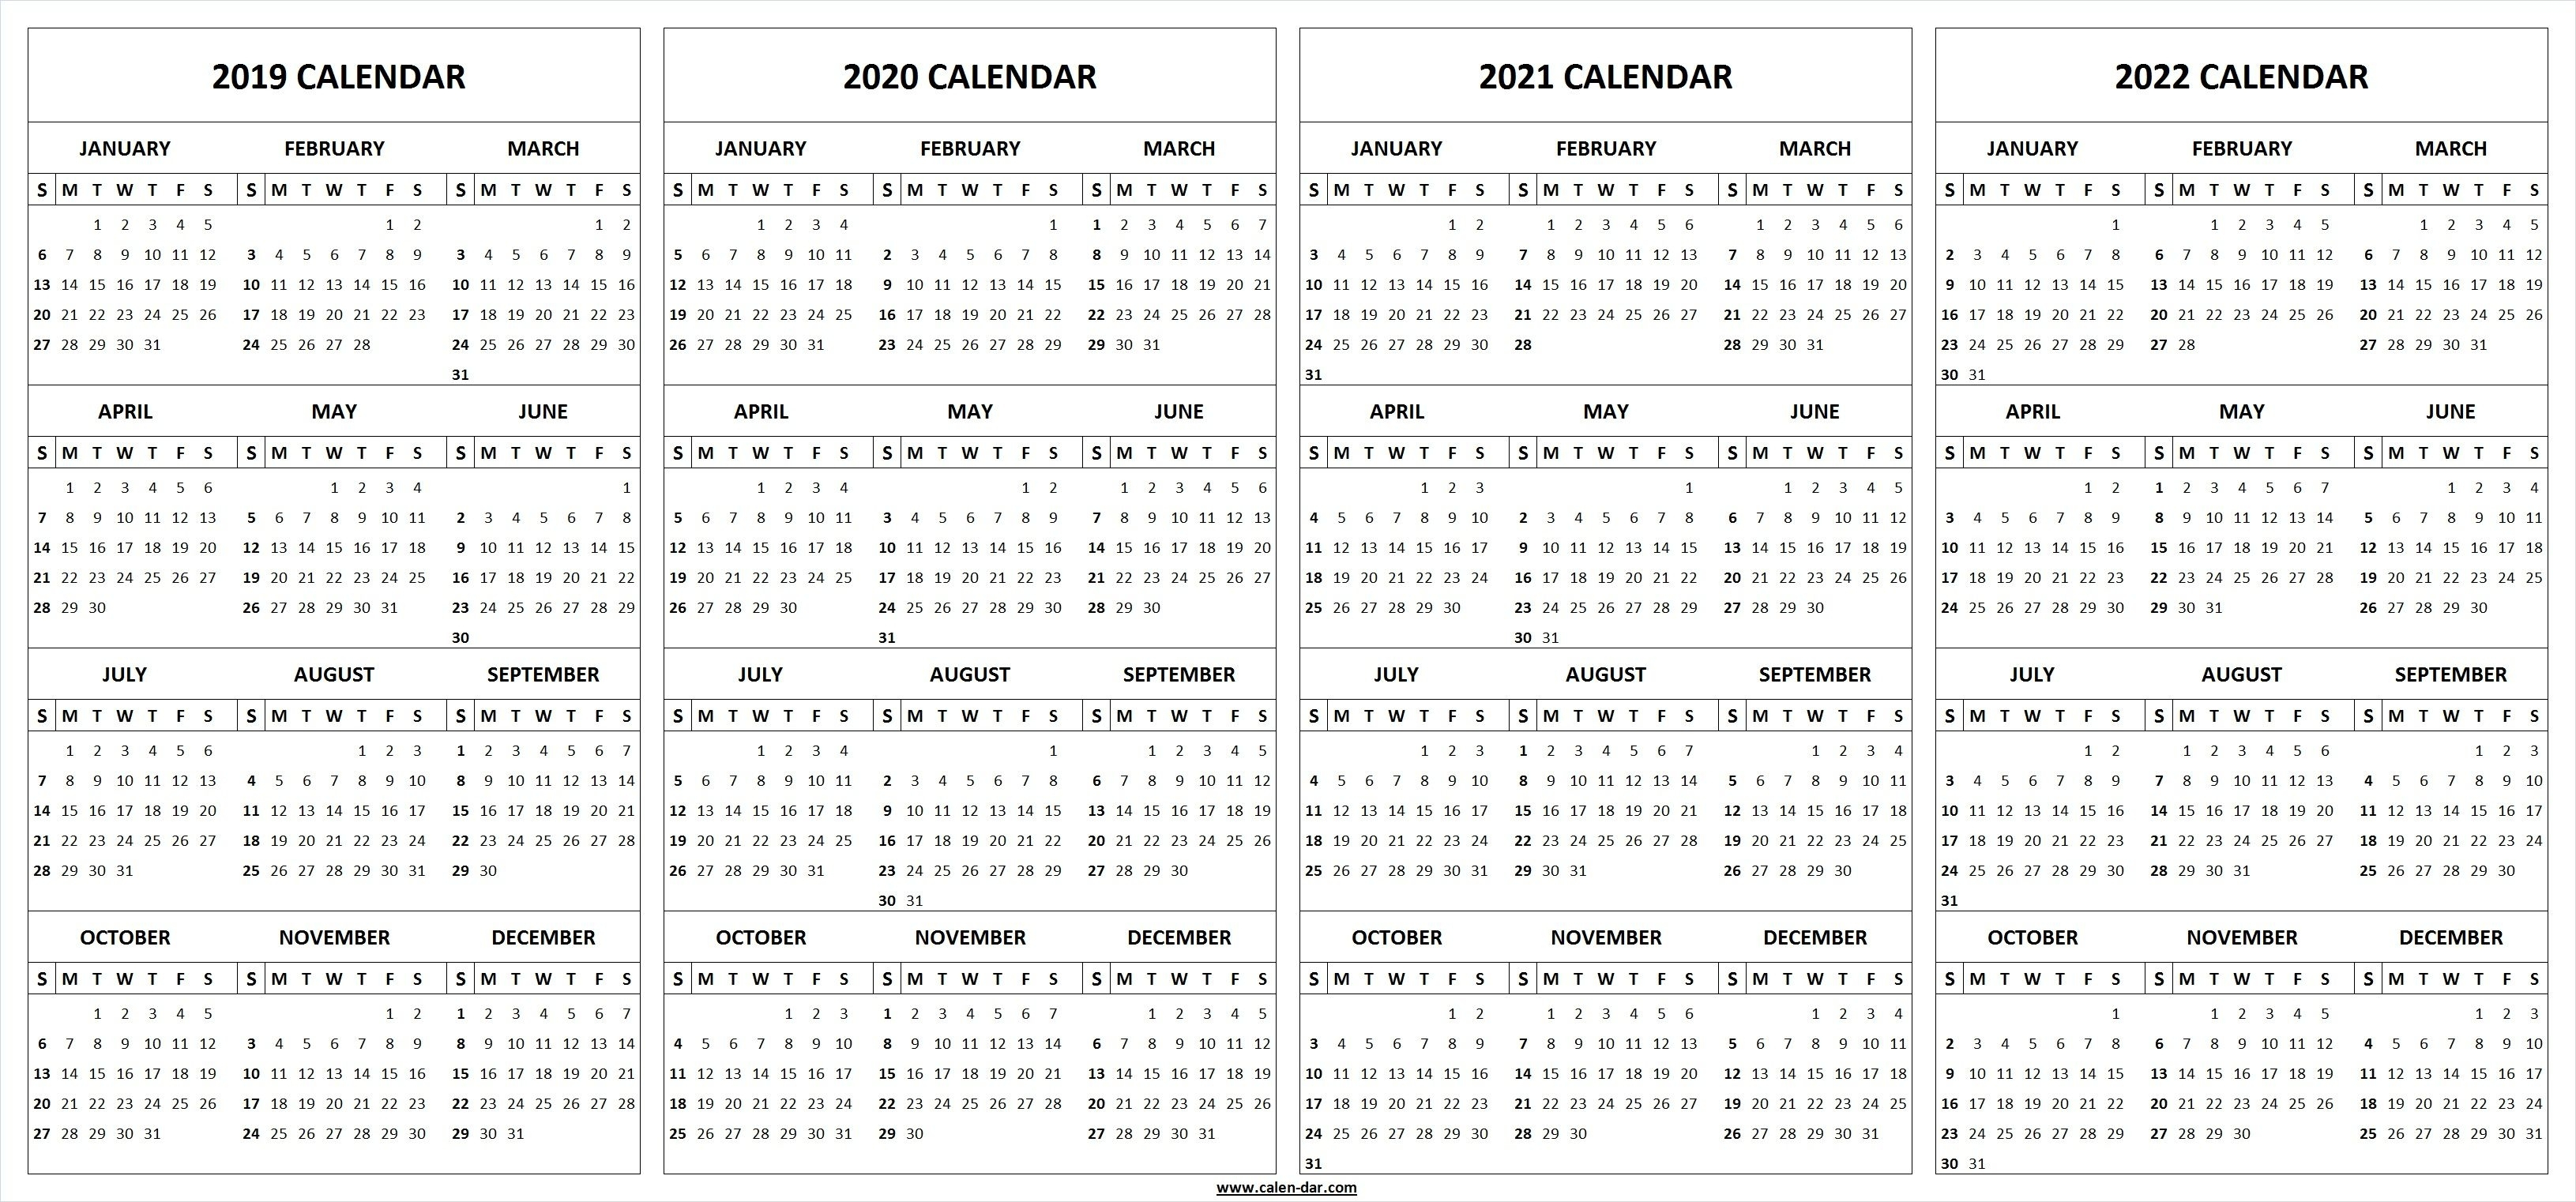 2019 2020 2021 2022 Calendar Blank Template | 2021 Calendar throughout Microsoft Word Calendar Template 2019-2020